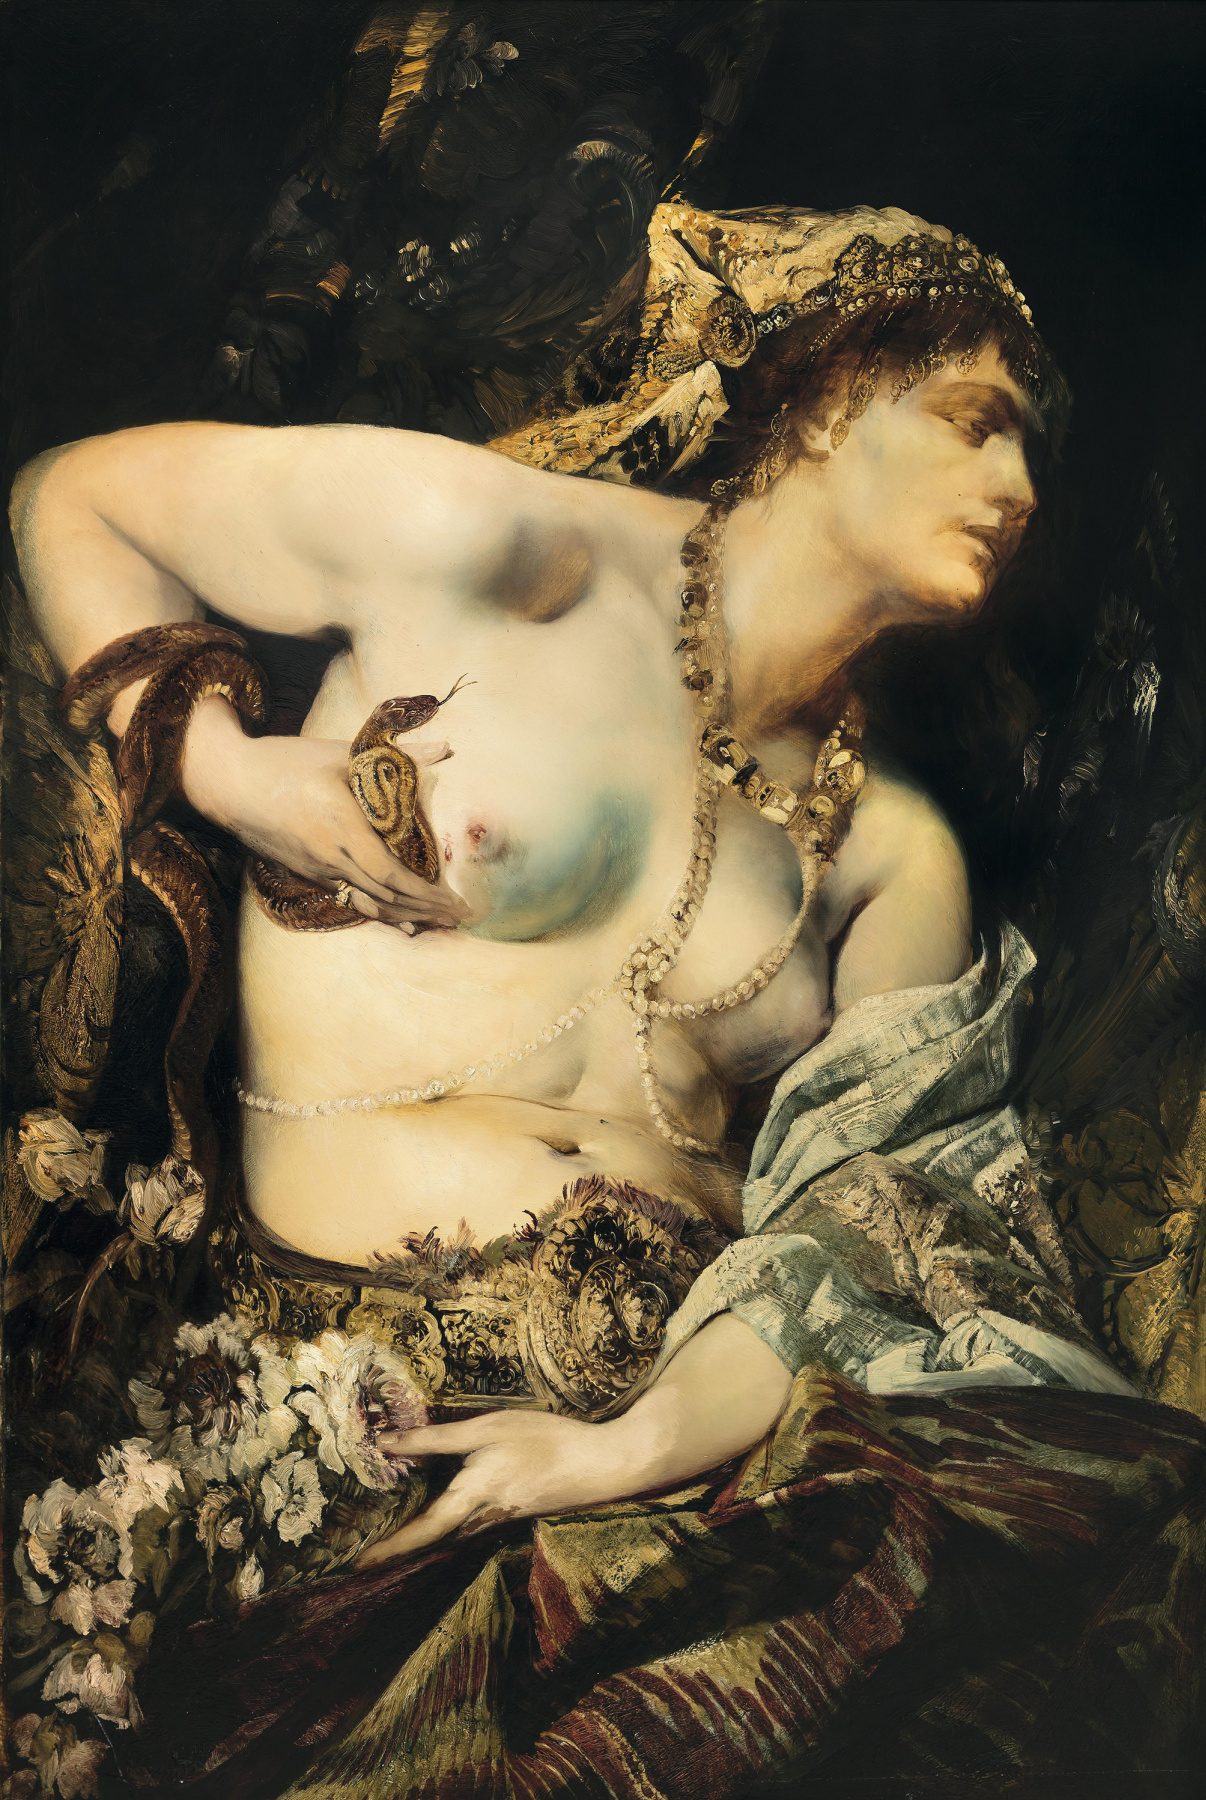 Hans Makart. The Death Of Cleopatra. Fragment.